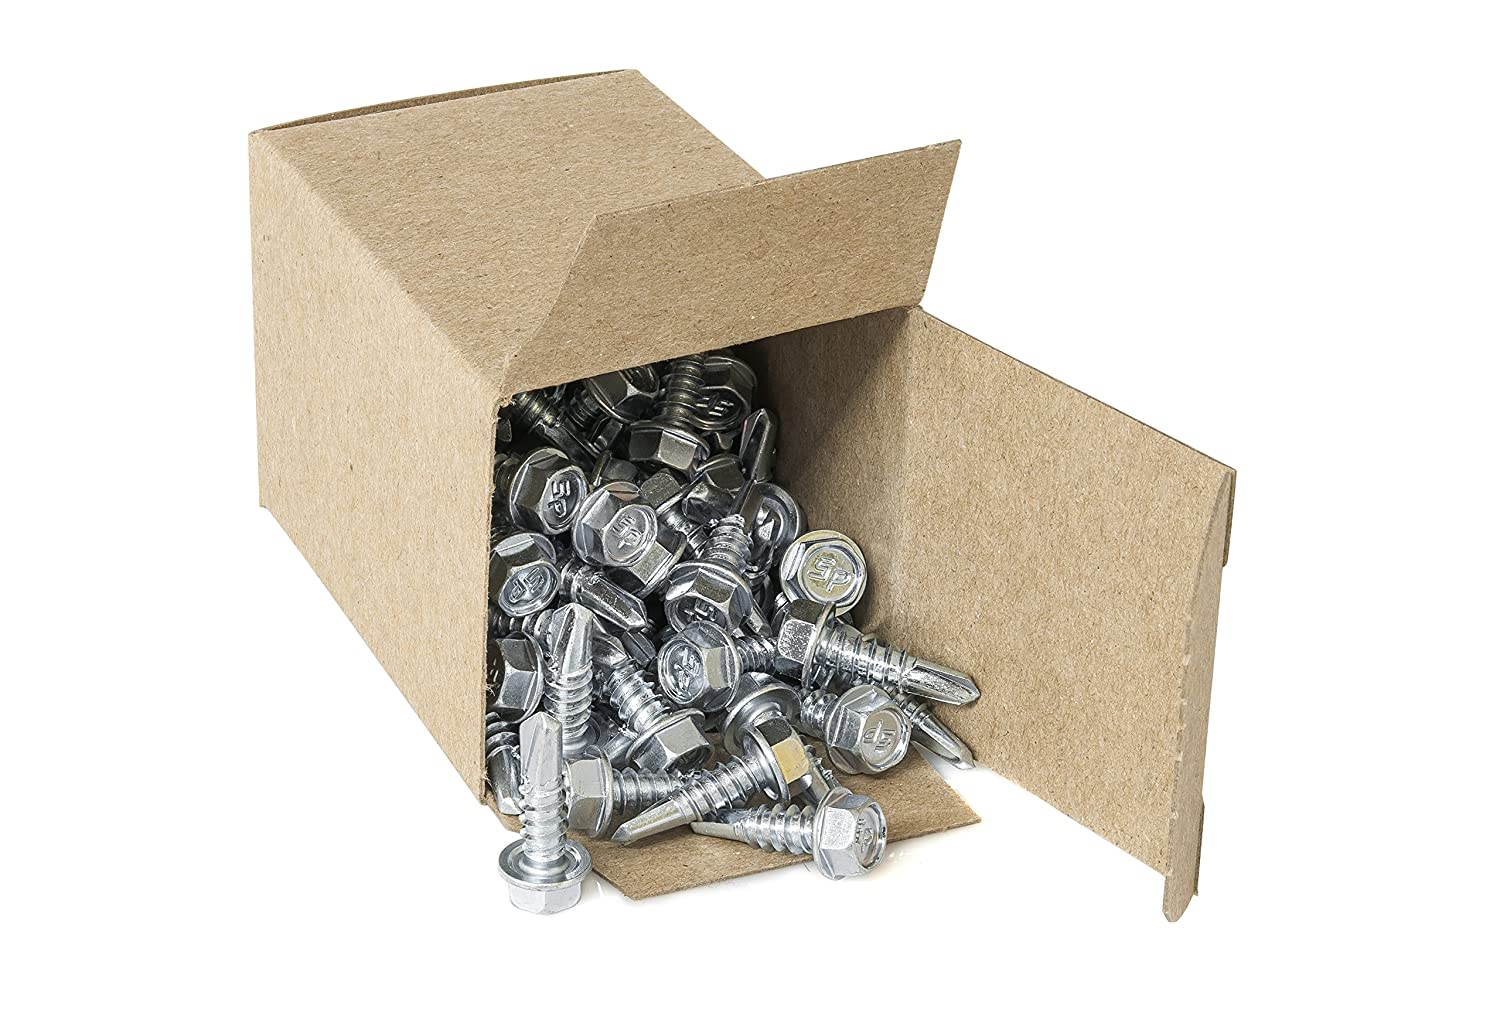 Box of 100 Strong-Point #12 x 1 Hex Washer Head Self-Drilling Tek Screw Zinc Plated Steel for Attaches Sheet Metal Steel Or Steel to Metal